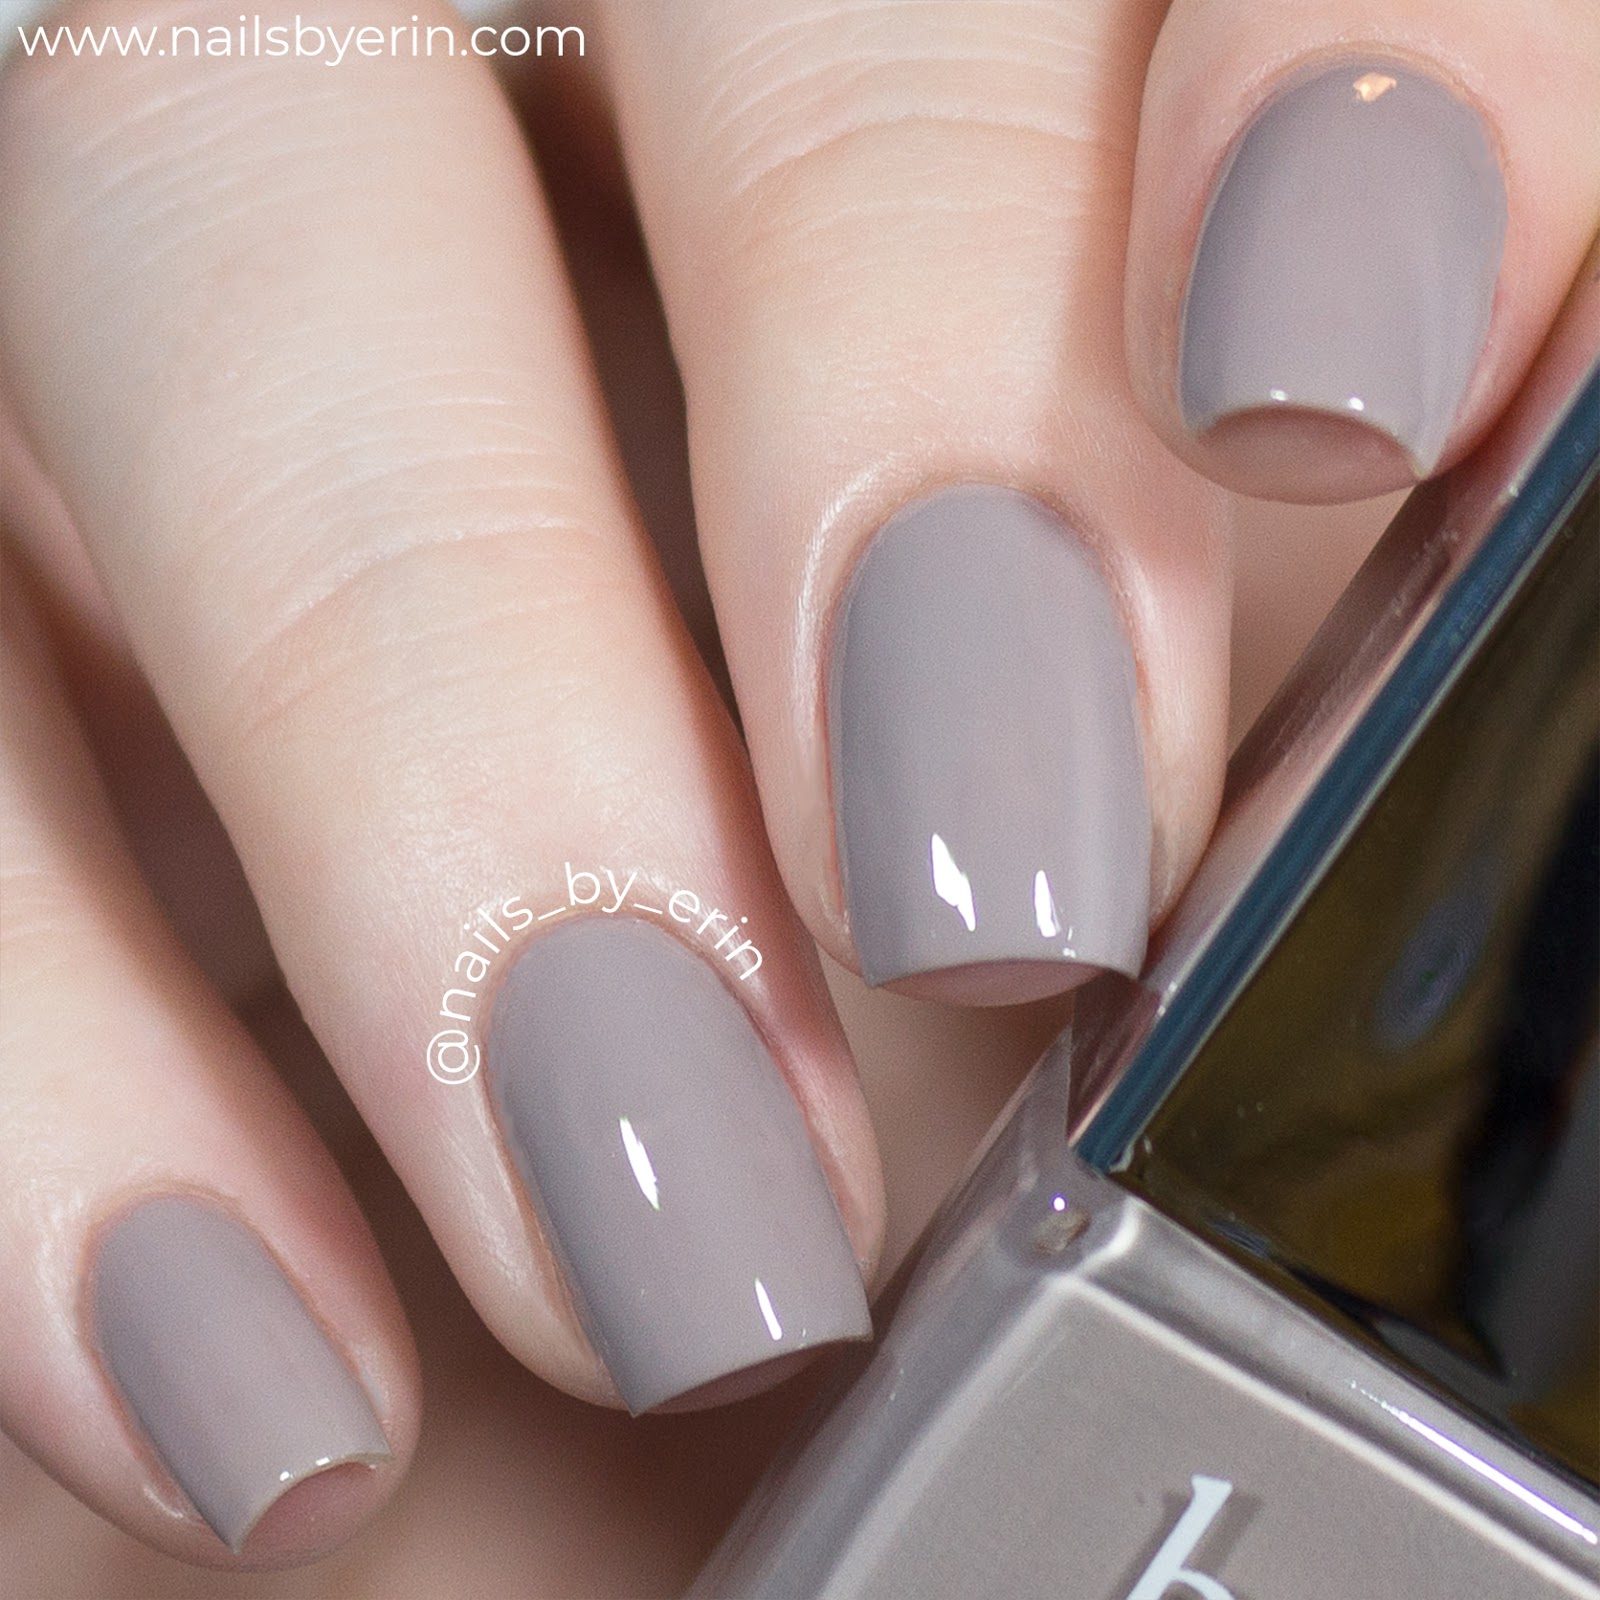 Butter London Patent Shine 10x Swatches And Review Nailsbyerin